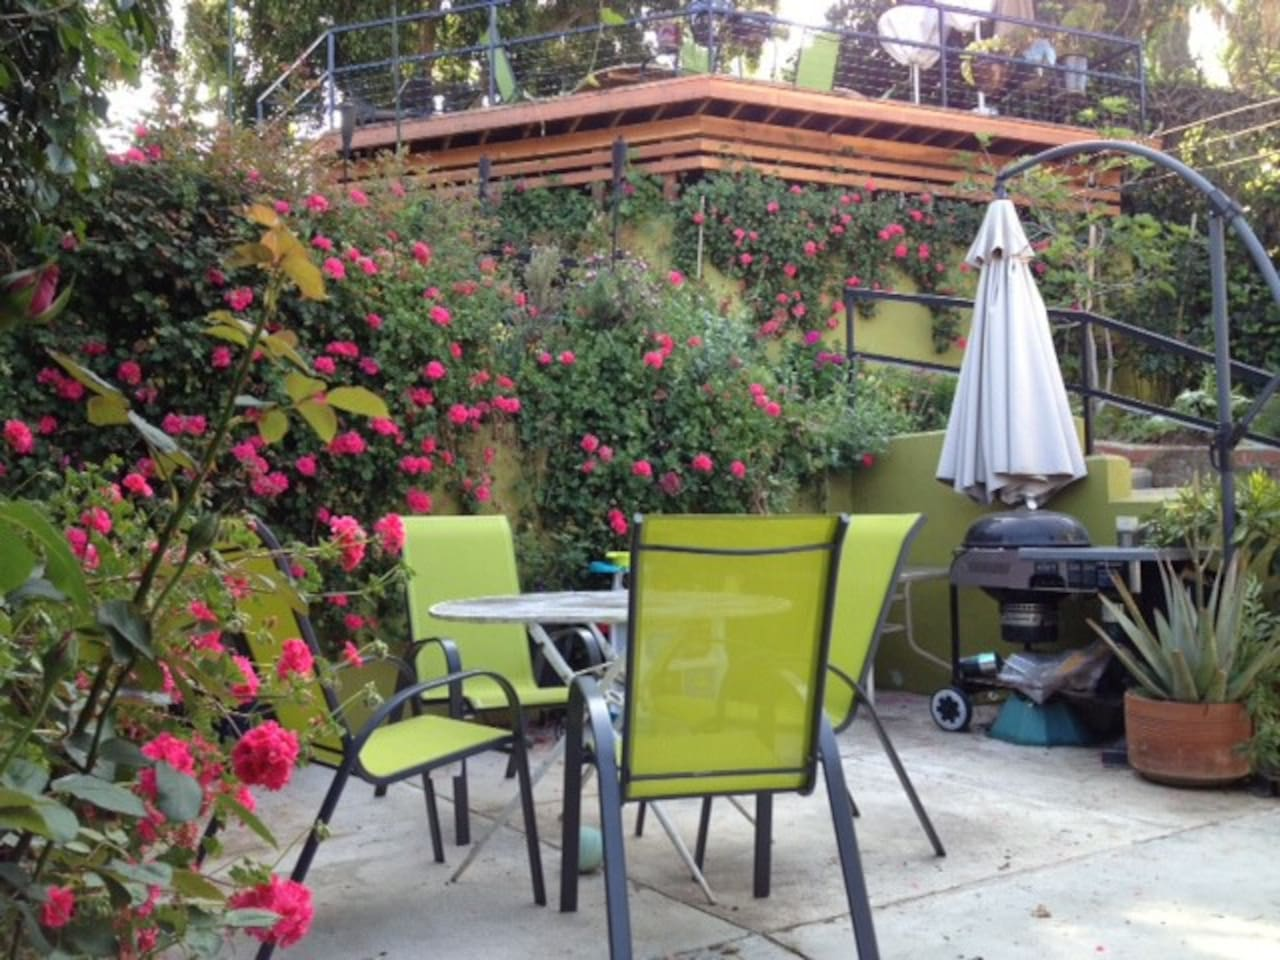 Year 'round flowers and outdoor living.